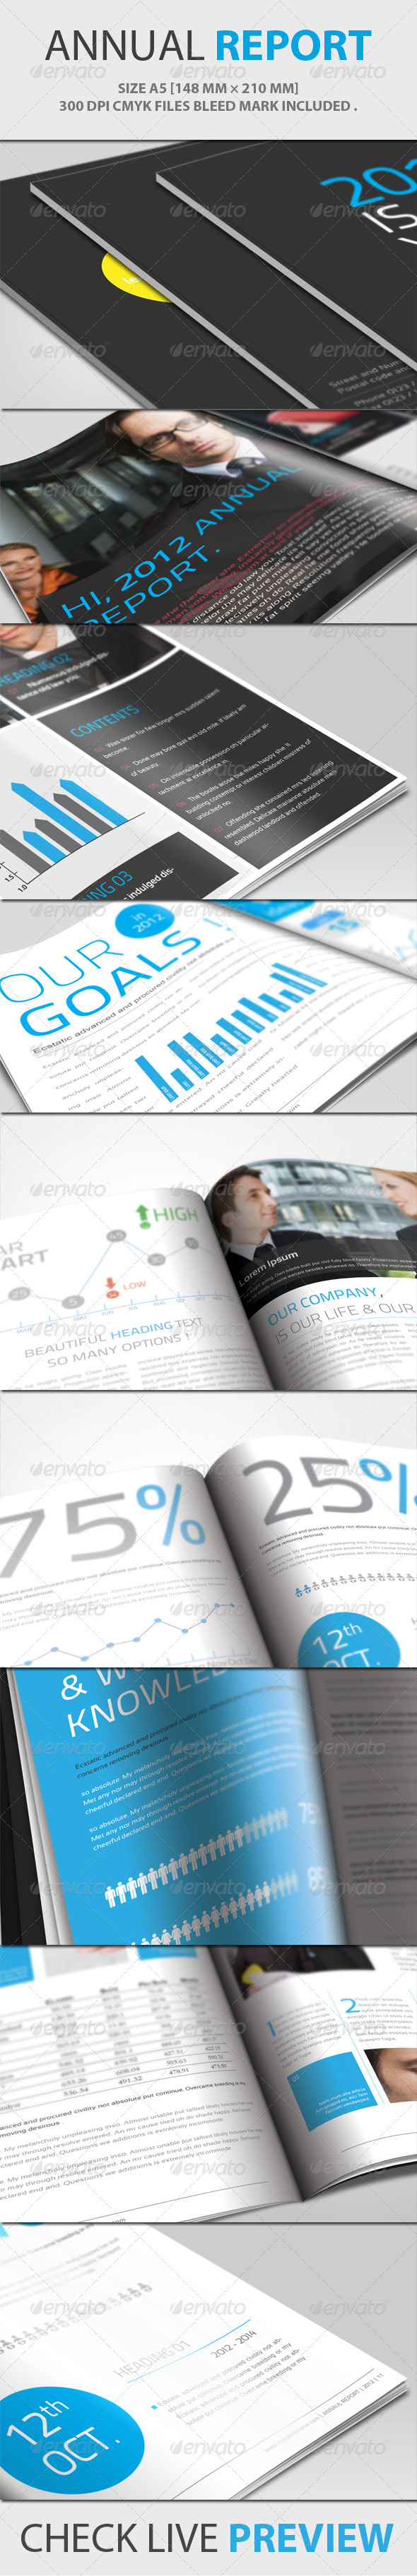 GraphicRiver Annual Report Brochure 1548888